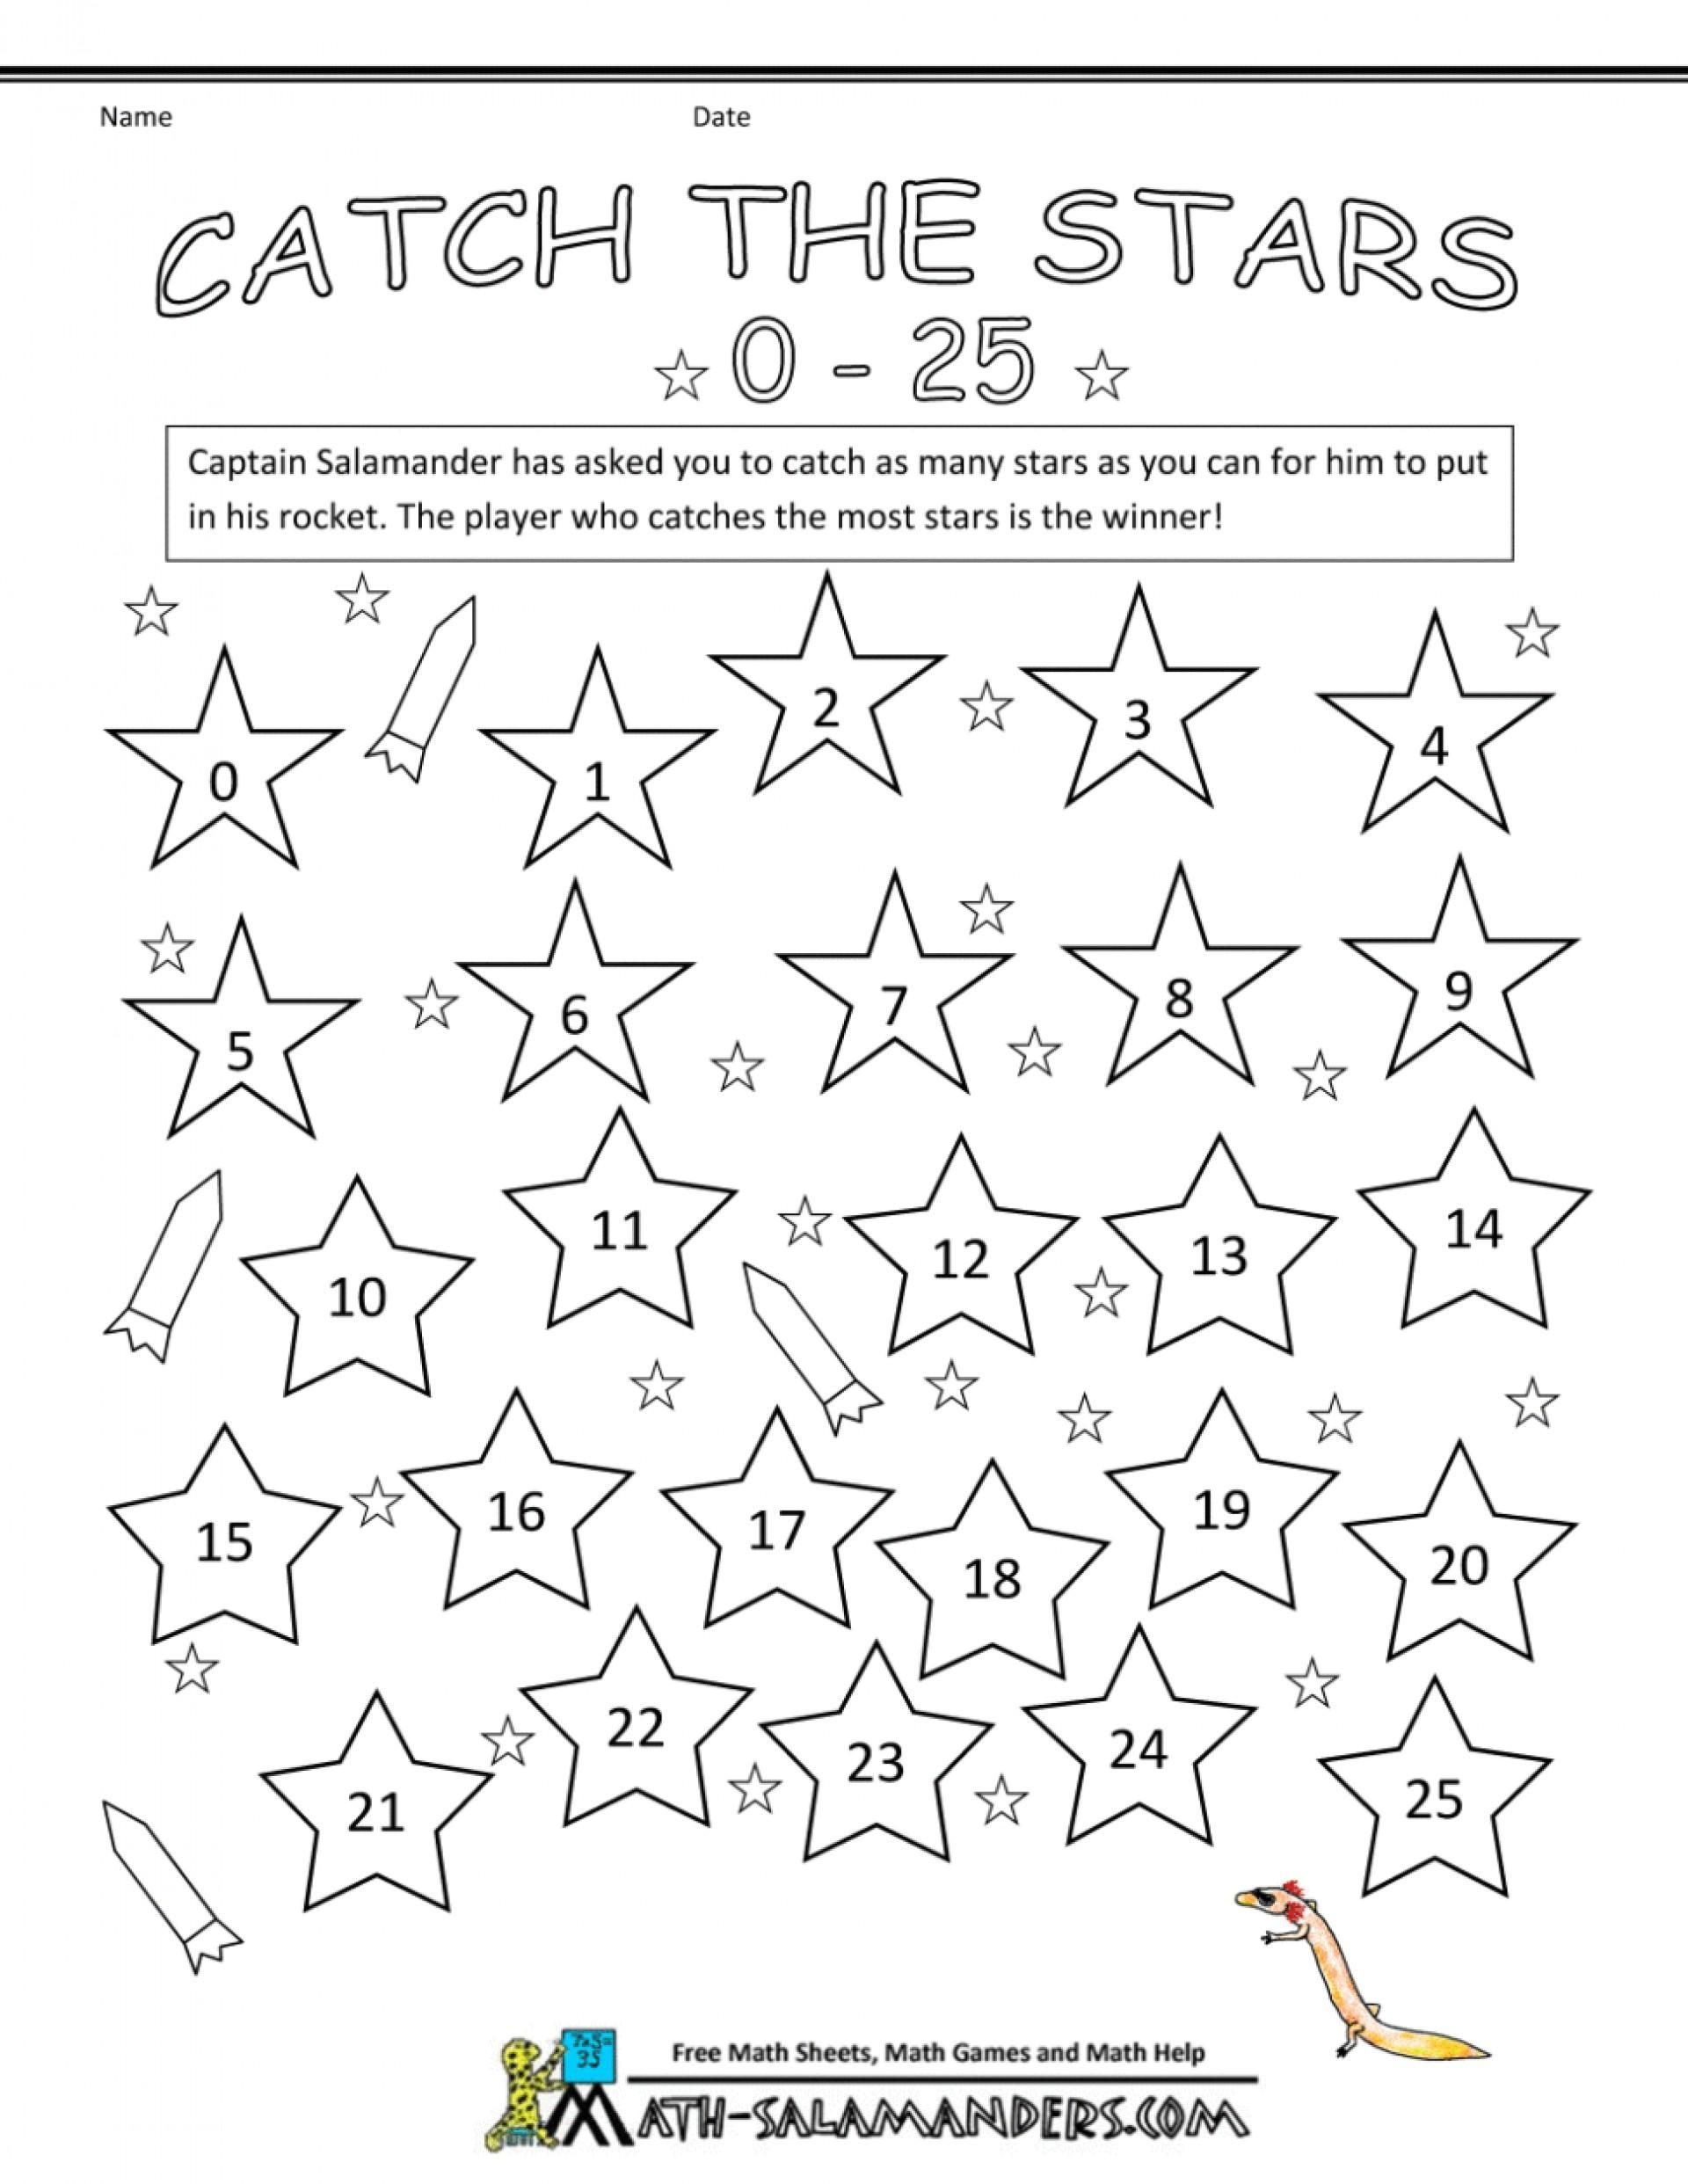 51 Math Worksheets For Junior High Students Fun Math Worksheets Math Worksheets Christmas Math Worksheets